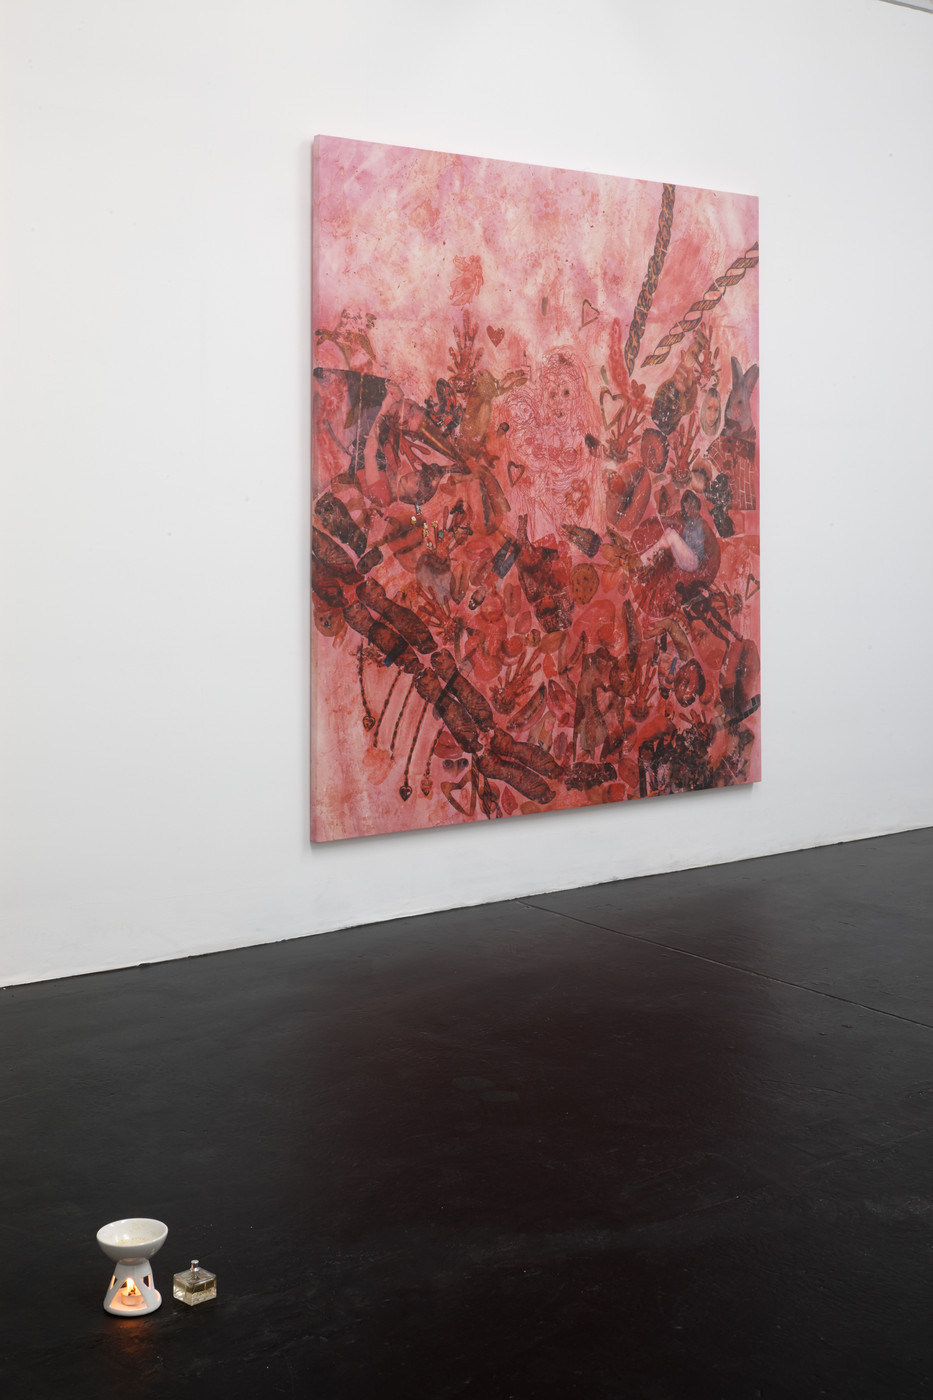 Take this Gum and Stick it - Installation View II